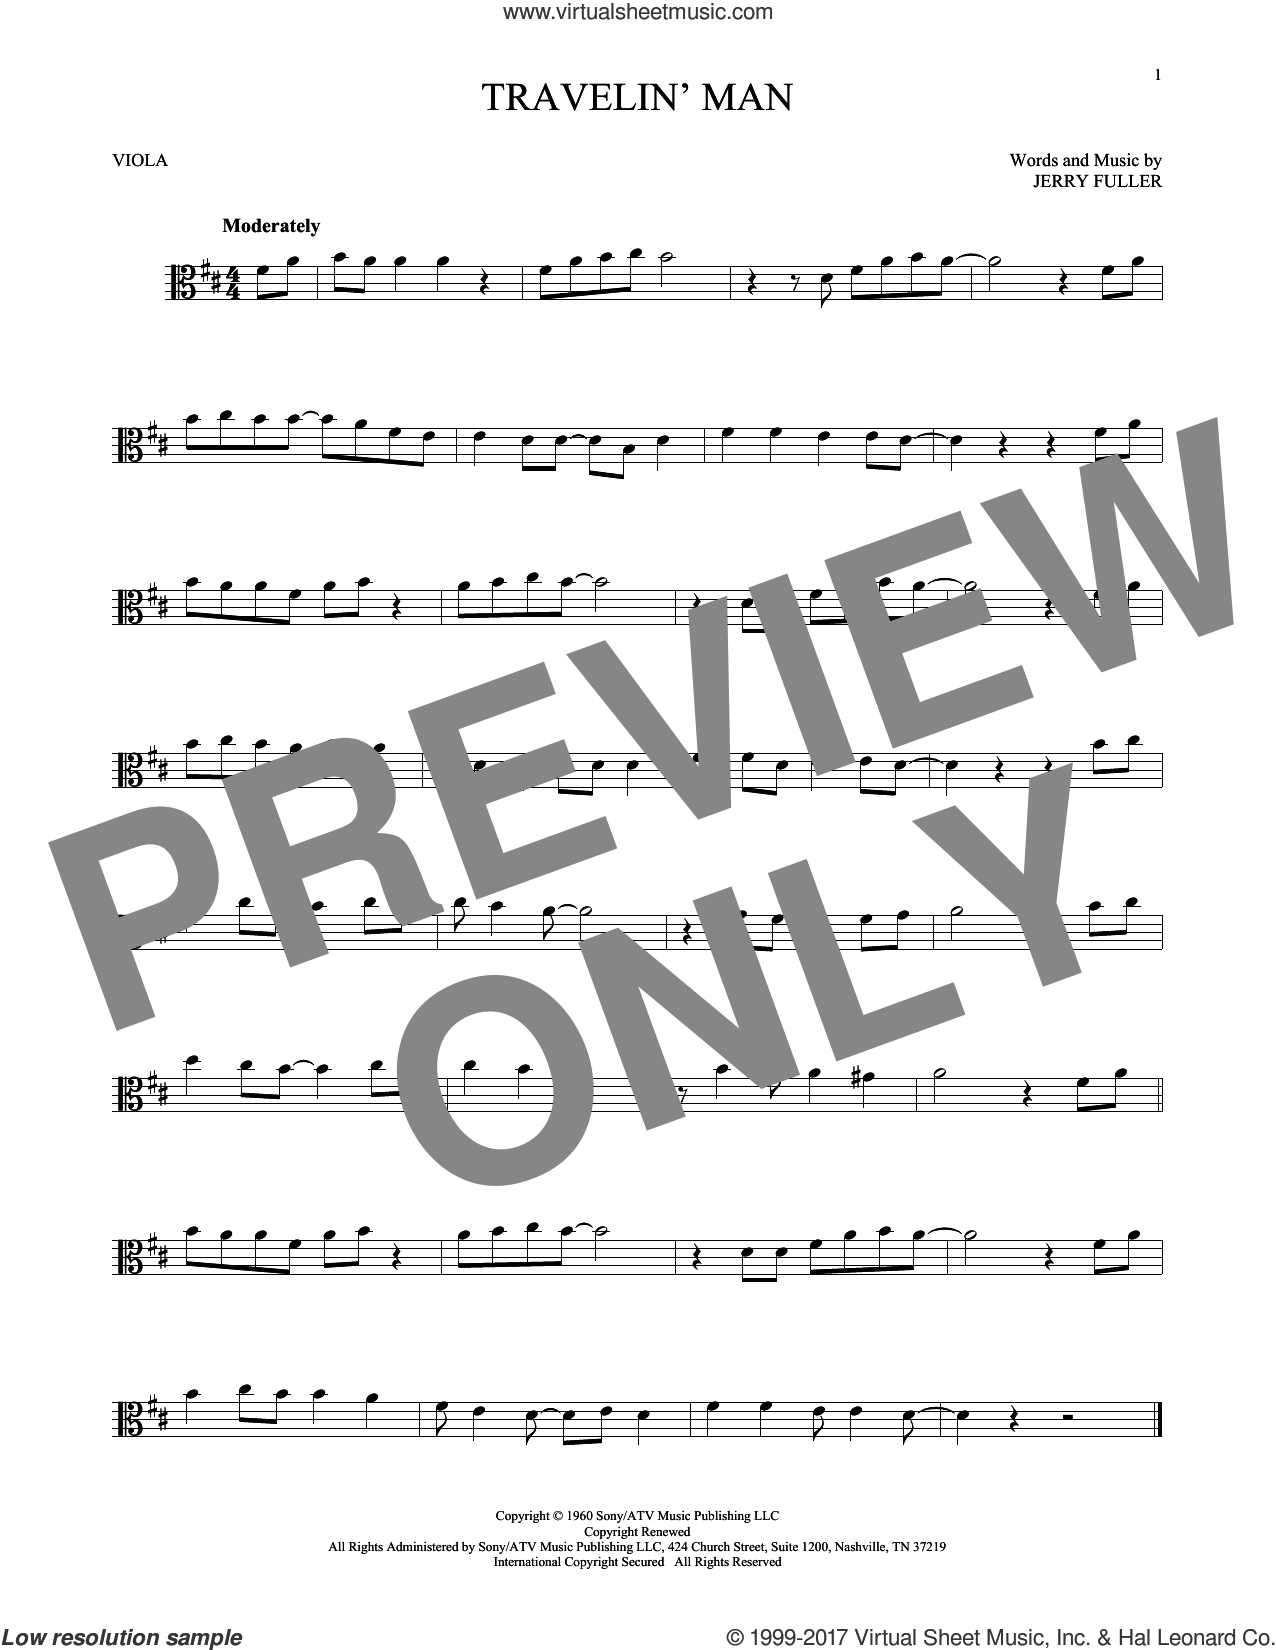 Travelin' Man sheet music for viola solo by Ricky Nelson and Jerry Fuller, intermediate skill level